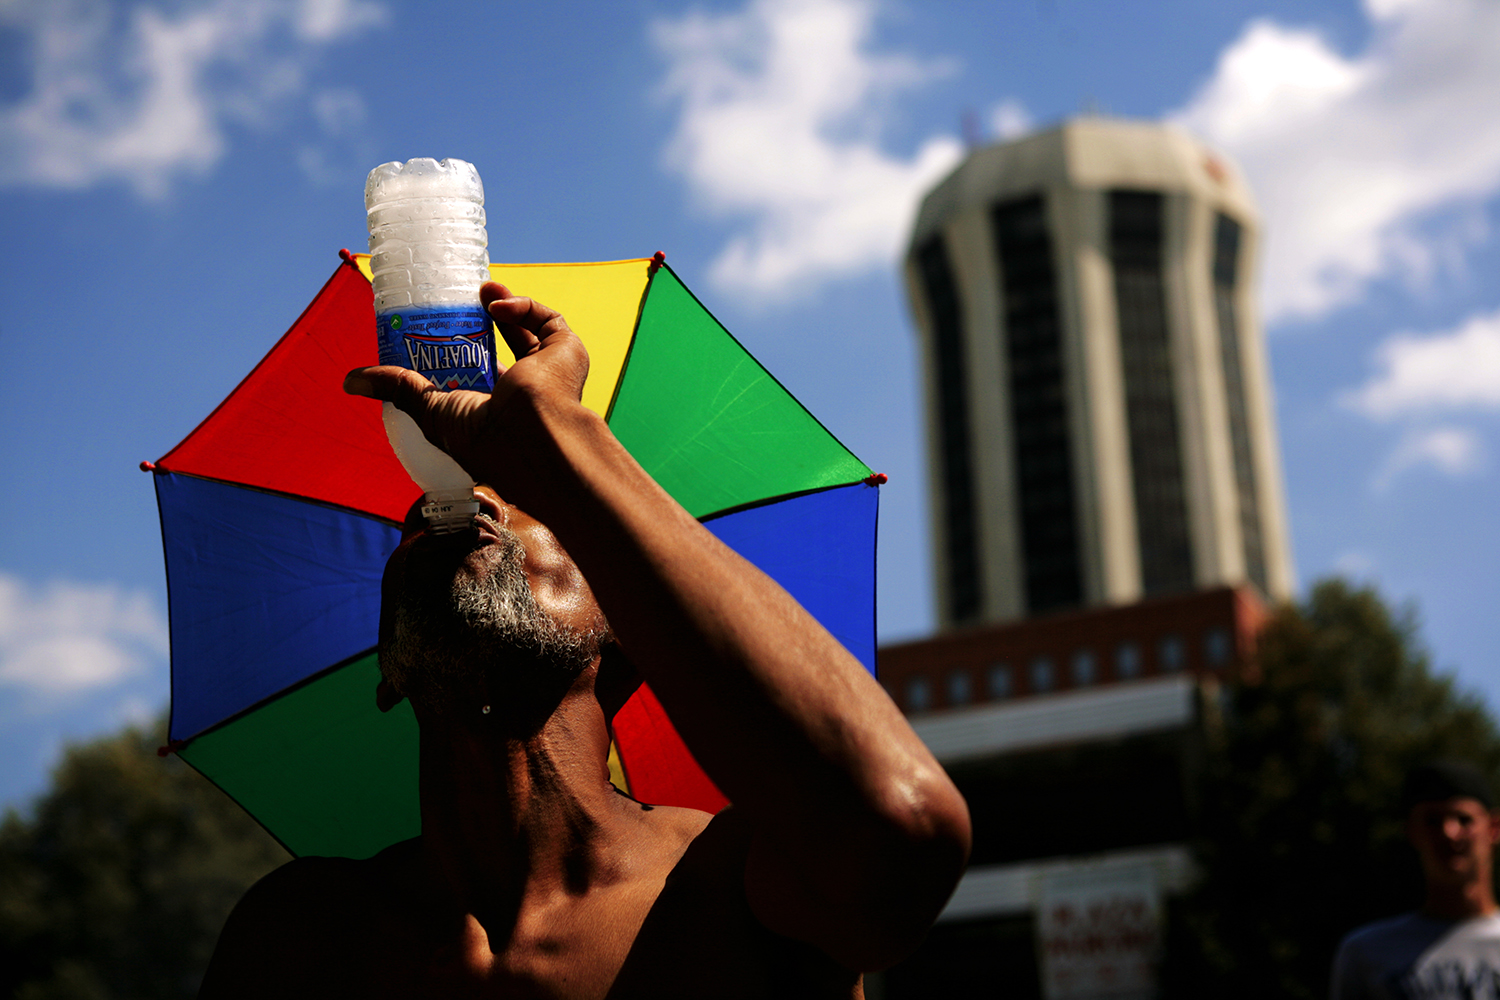 Dexter Young, of Springfield, takes a drink of water while watching his son in the Gus Macker Basketball Tournament in downtown Springfield. Max Bittle/The State Journal-Register